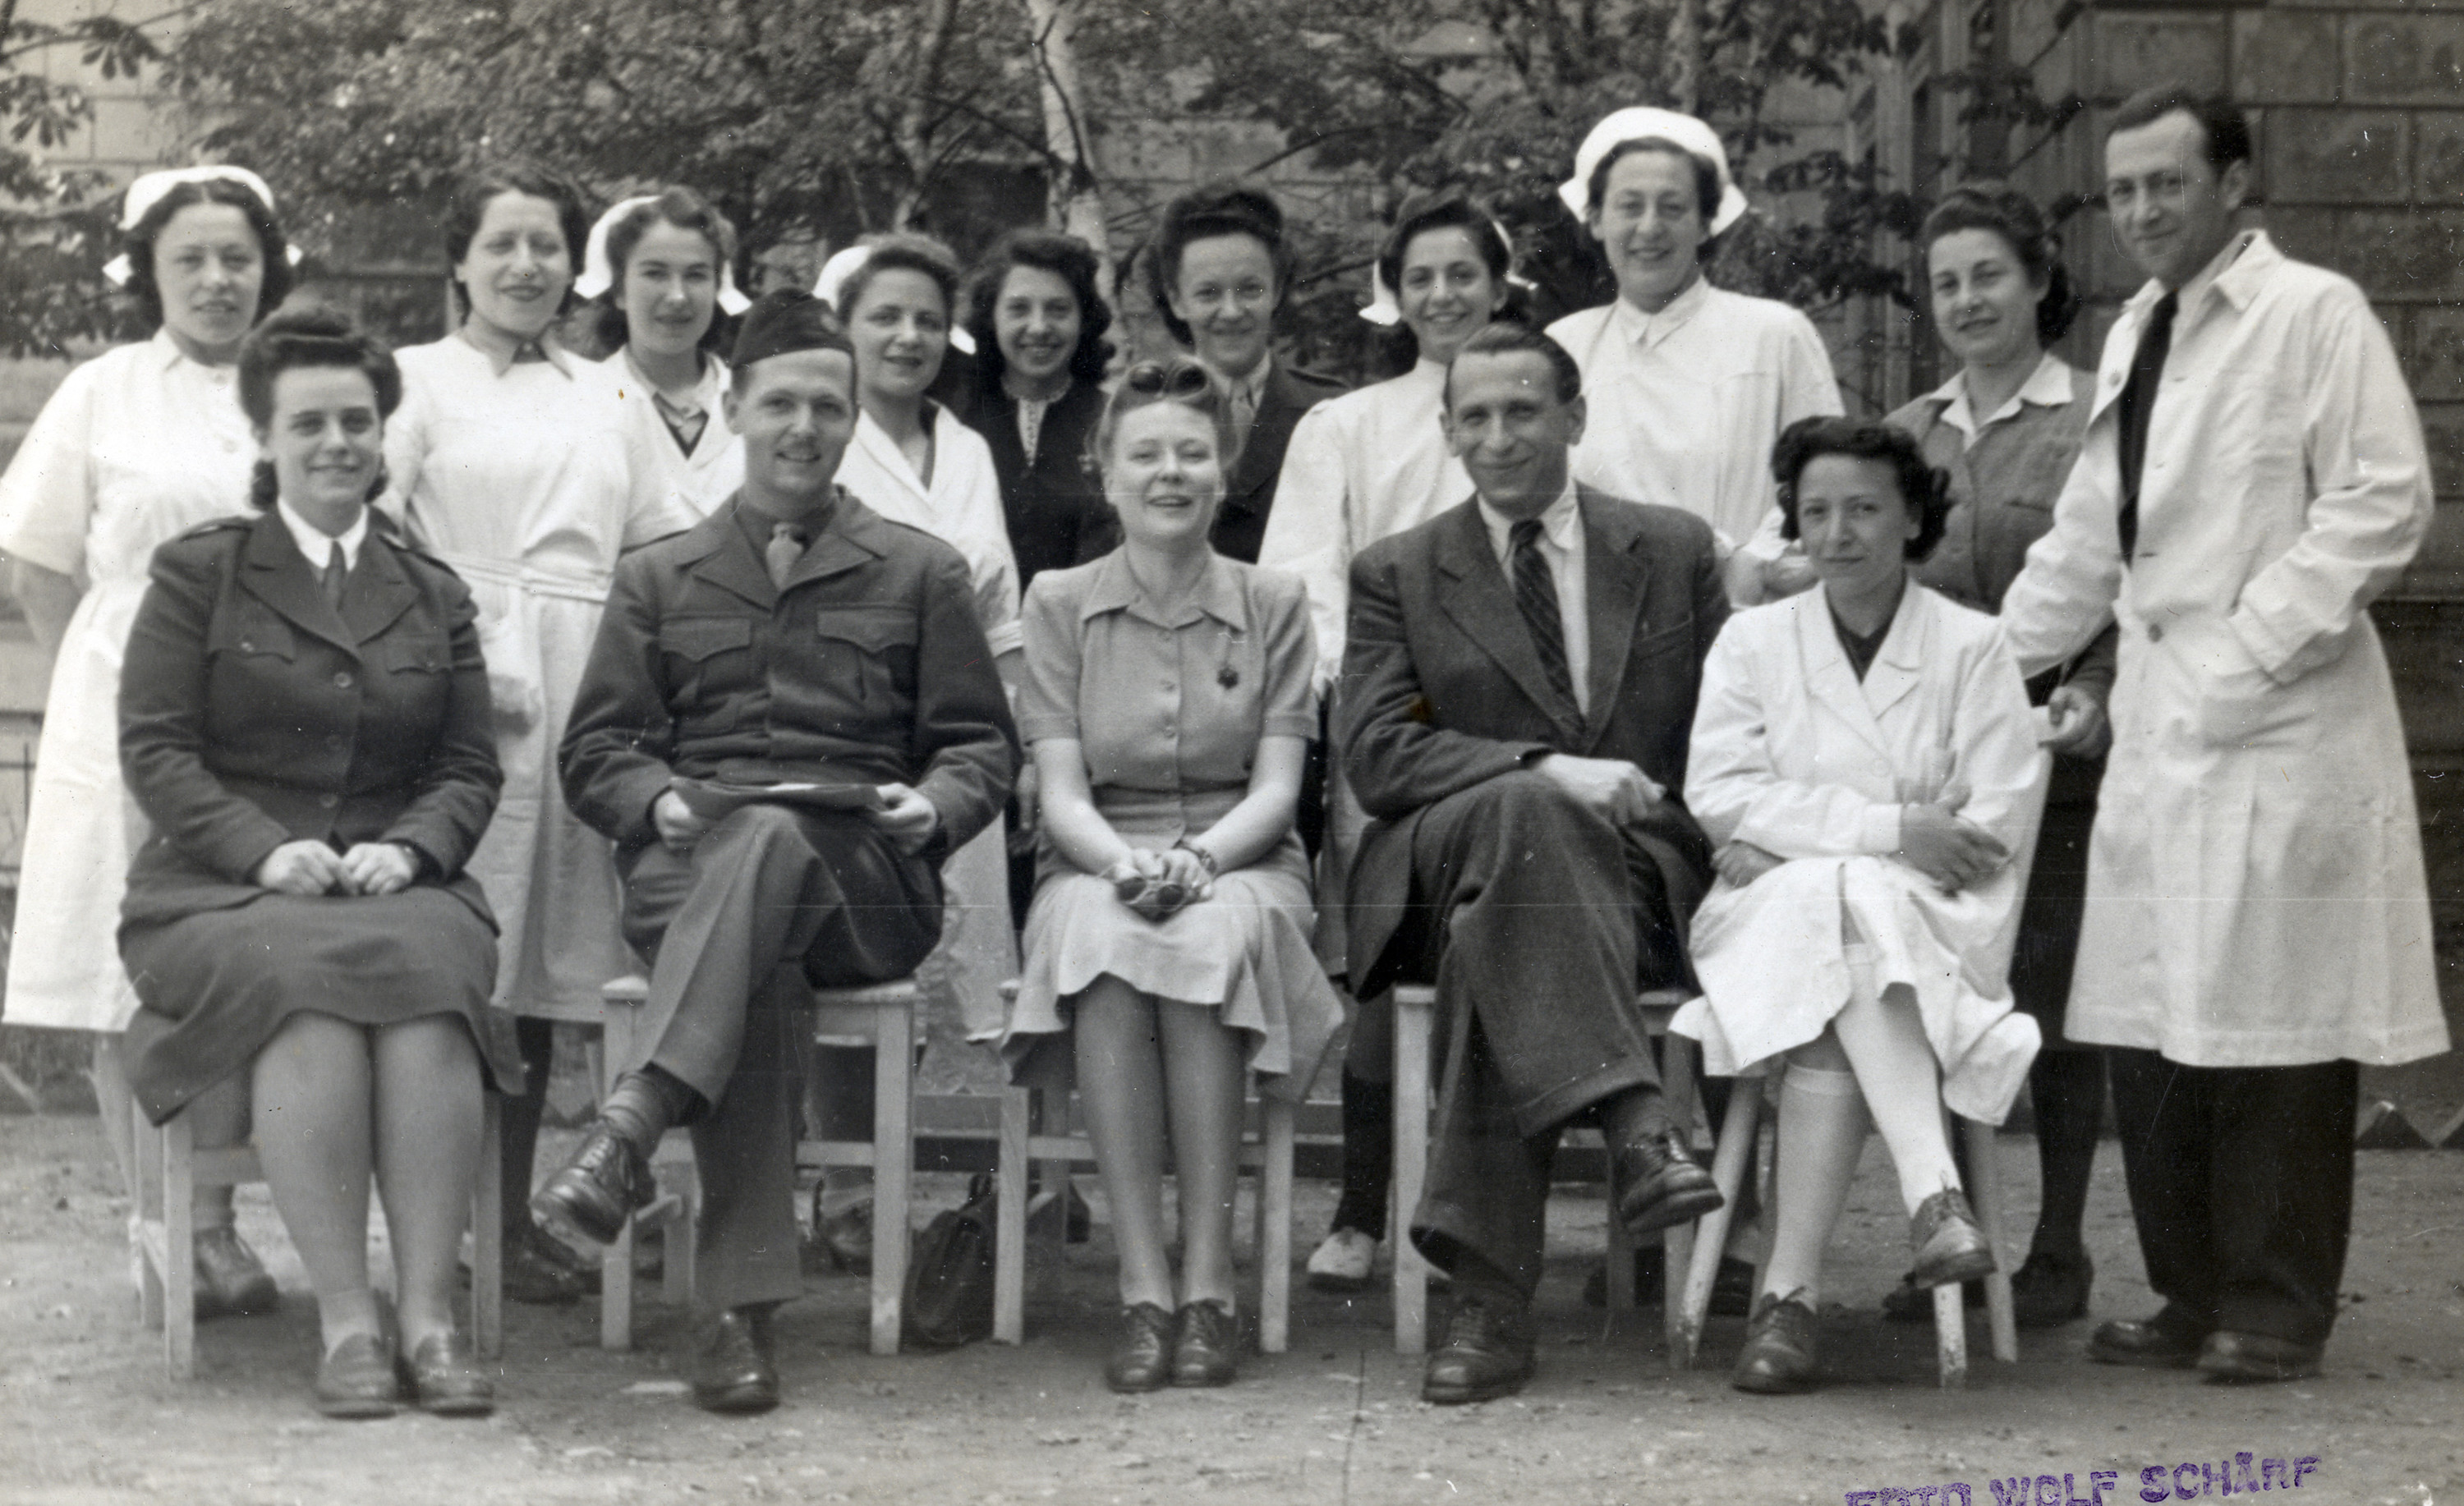 Group portrait of UNRAA staff and medical personnel at the Rothschild Hospital in Vienna.    Among those pictured is Dr. Georg Kollman (seated in front, second from the right).